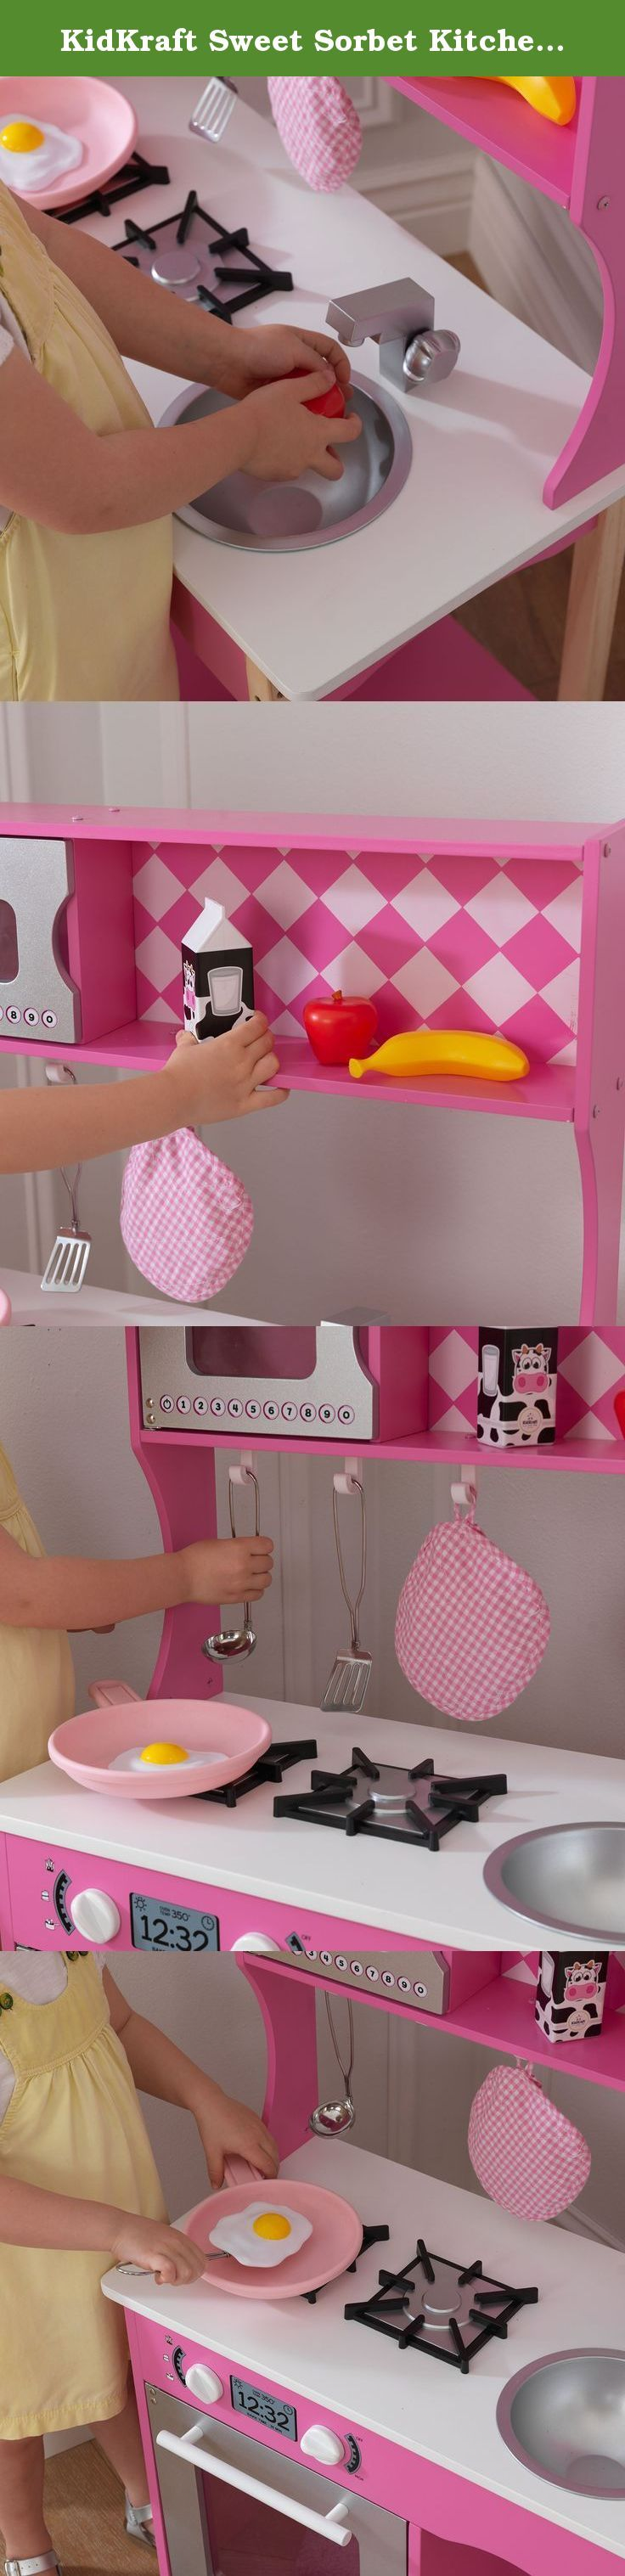 KidKraft Sweet Sorbet Kitchen Toy. Let's cook up some fun. The Sweet Sorbet Kitchen is a one-of-a-kind toy that young girls are sure to love. This wooden play kitchen is super sturdy and was designed to last for years and years. Parents will love the smart storage options, which help keep bedrooms tidy and organized. Features include .